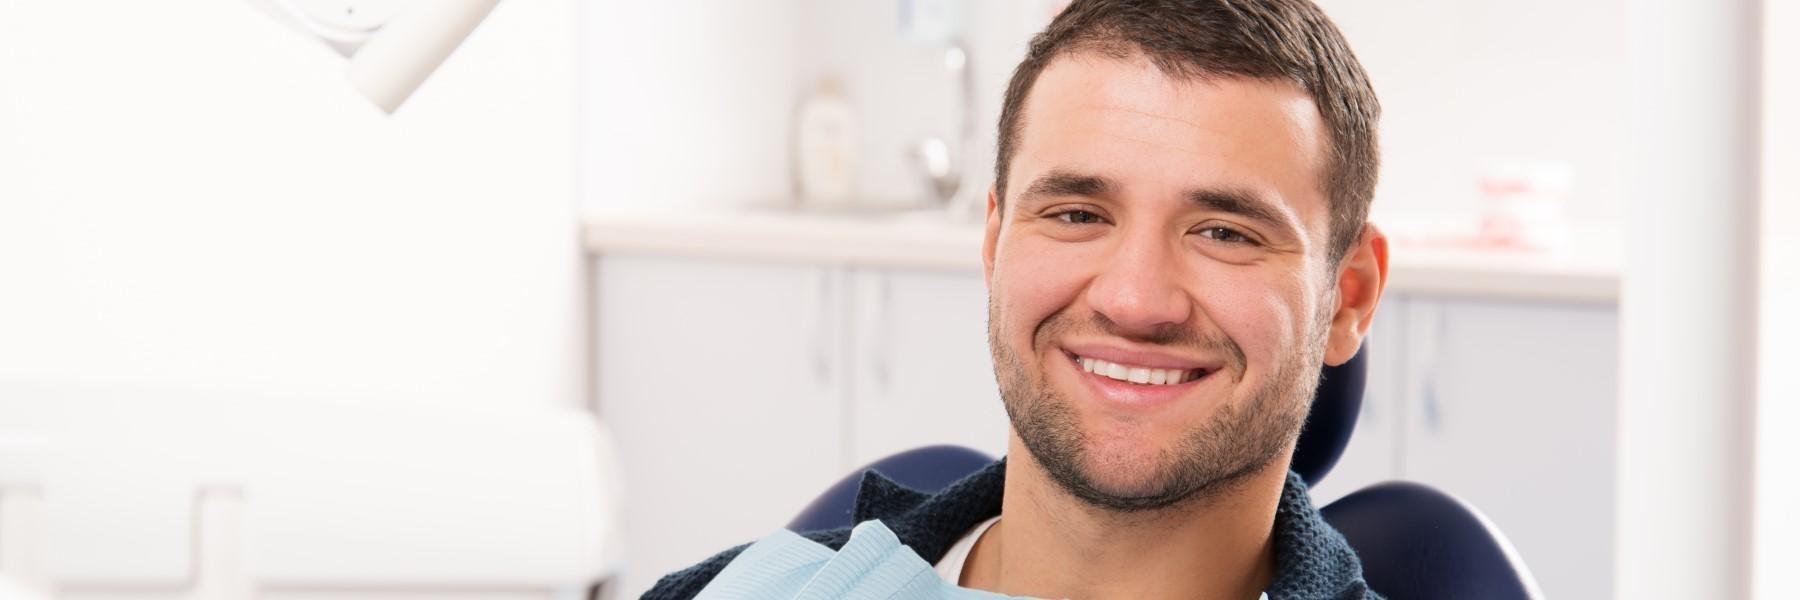 Man smiling in dental chair | Dentist Barrie ON